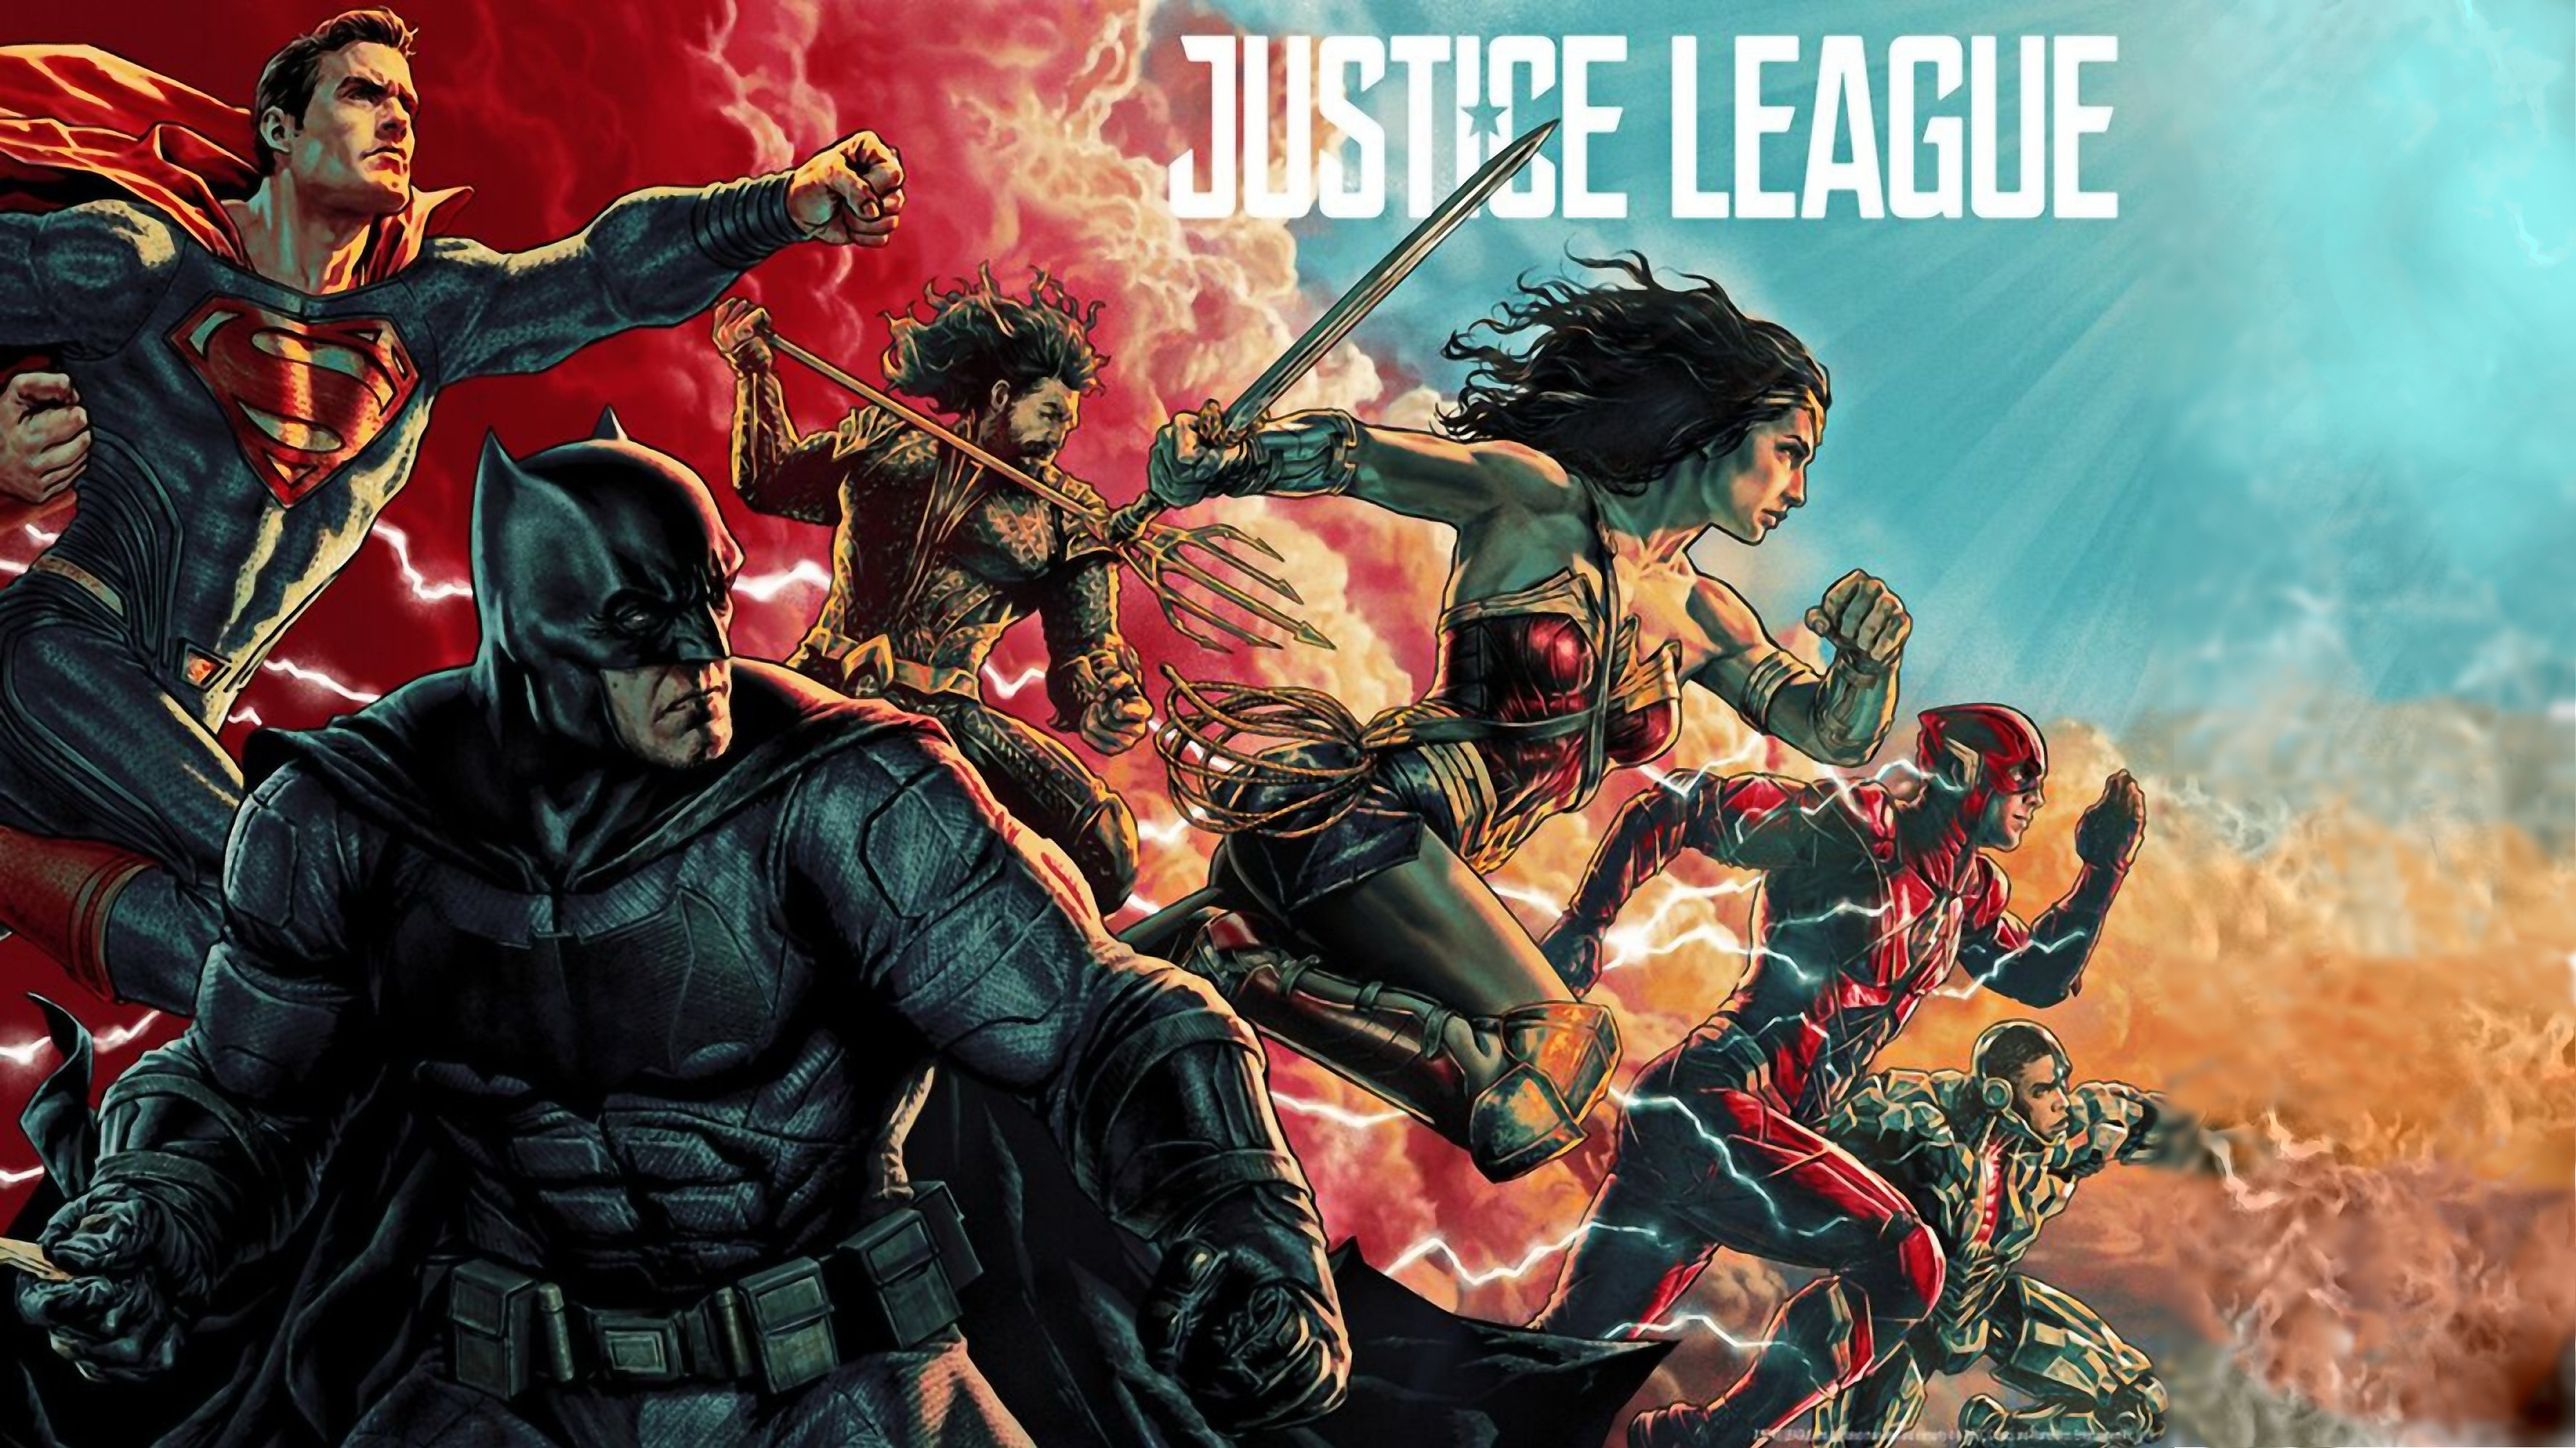 1920x1080 Justice League Comic Art Poster 1080p Laptop Full Hd